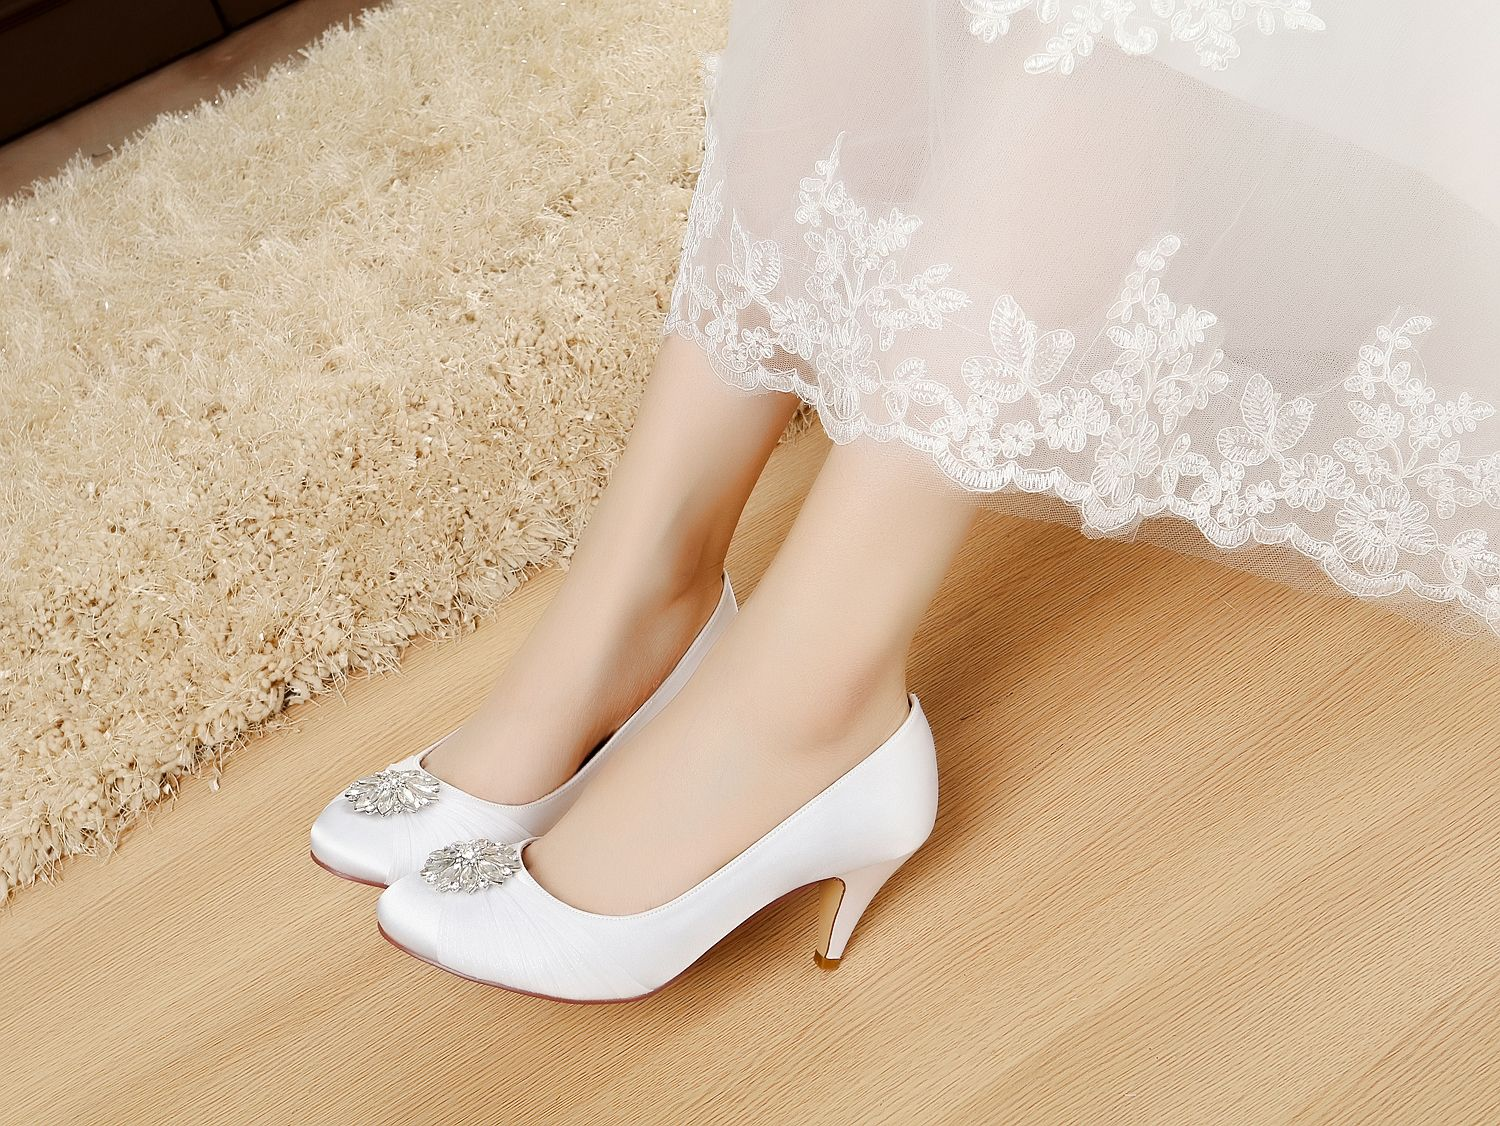 6599f1cad21 satin bridal shoes rhinestone wedding shoes low heel dress shoes for women  Comfortable silver wedding shoes Unique Design Low Satin   Lace Shoes for  Wedding ...